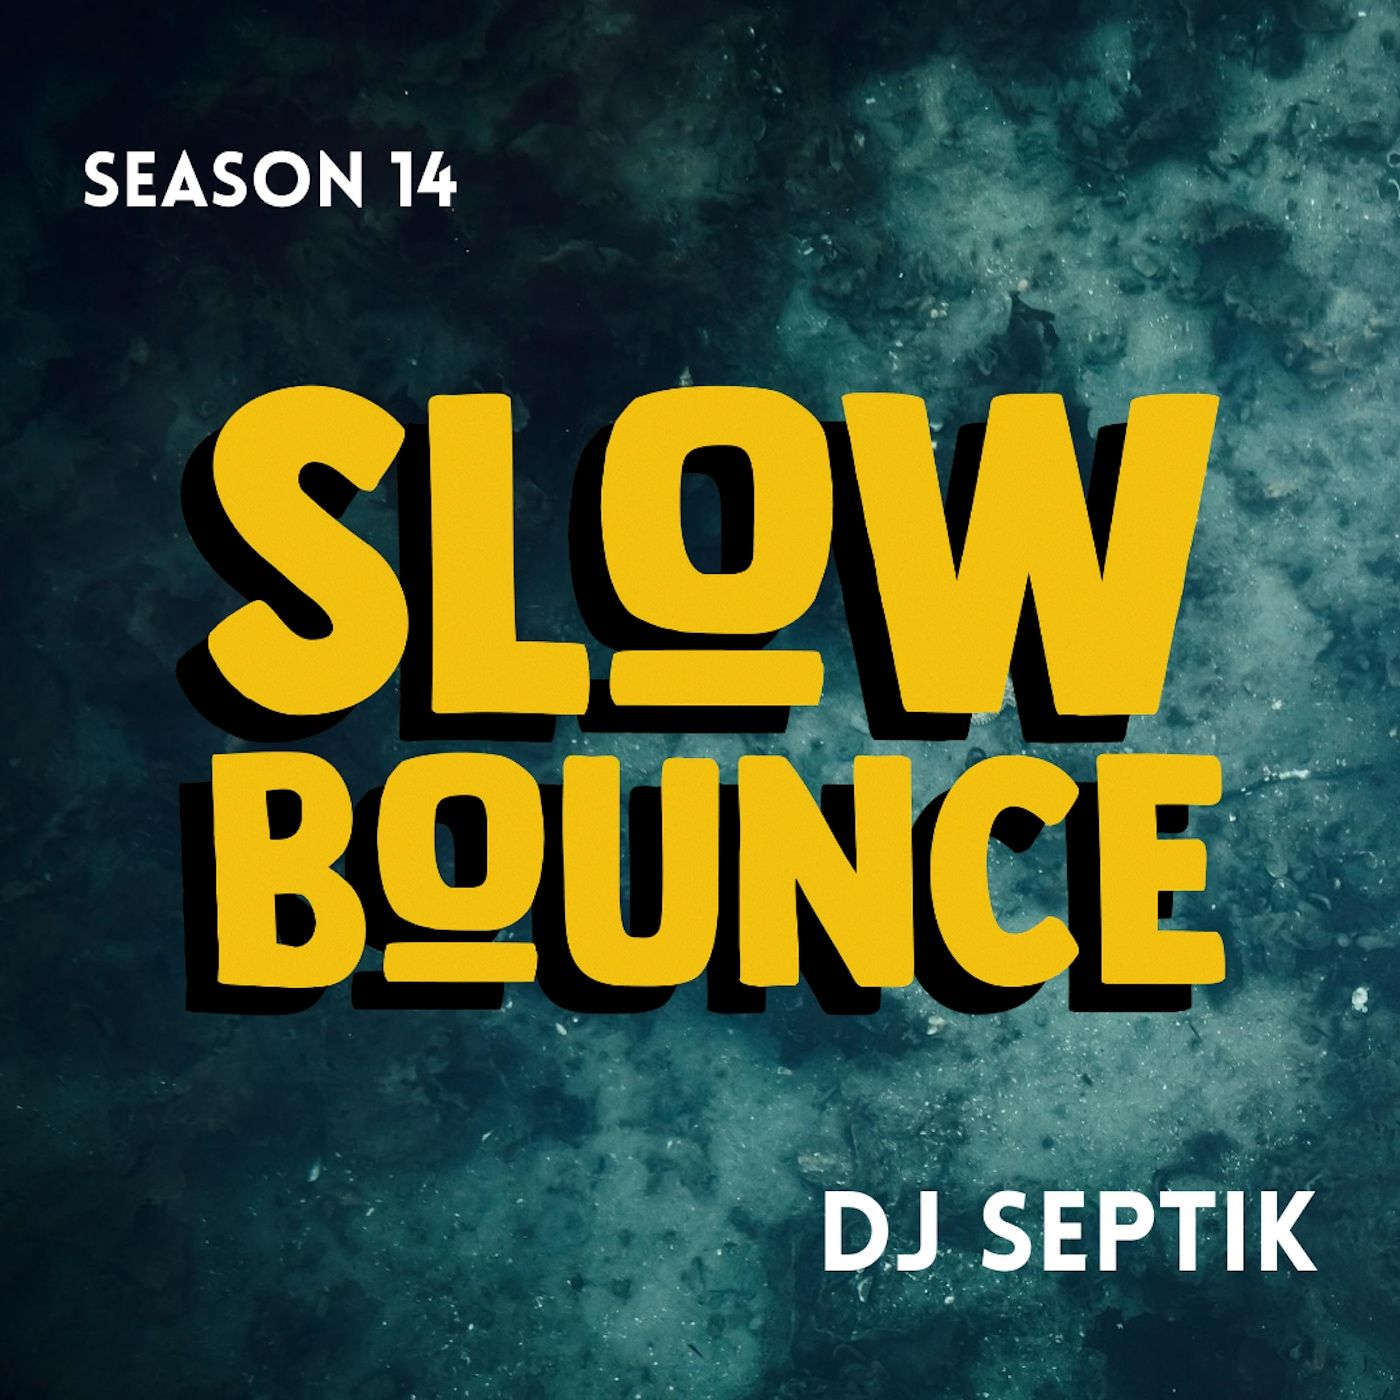 Bigupradio.com SLOWBOUNCE Dancehall & Tropical Bass Podcast